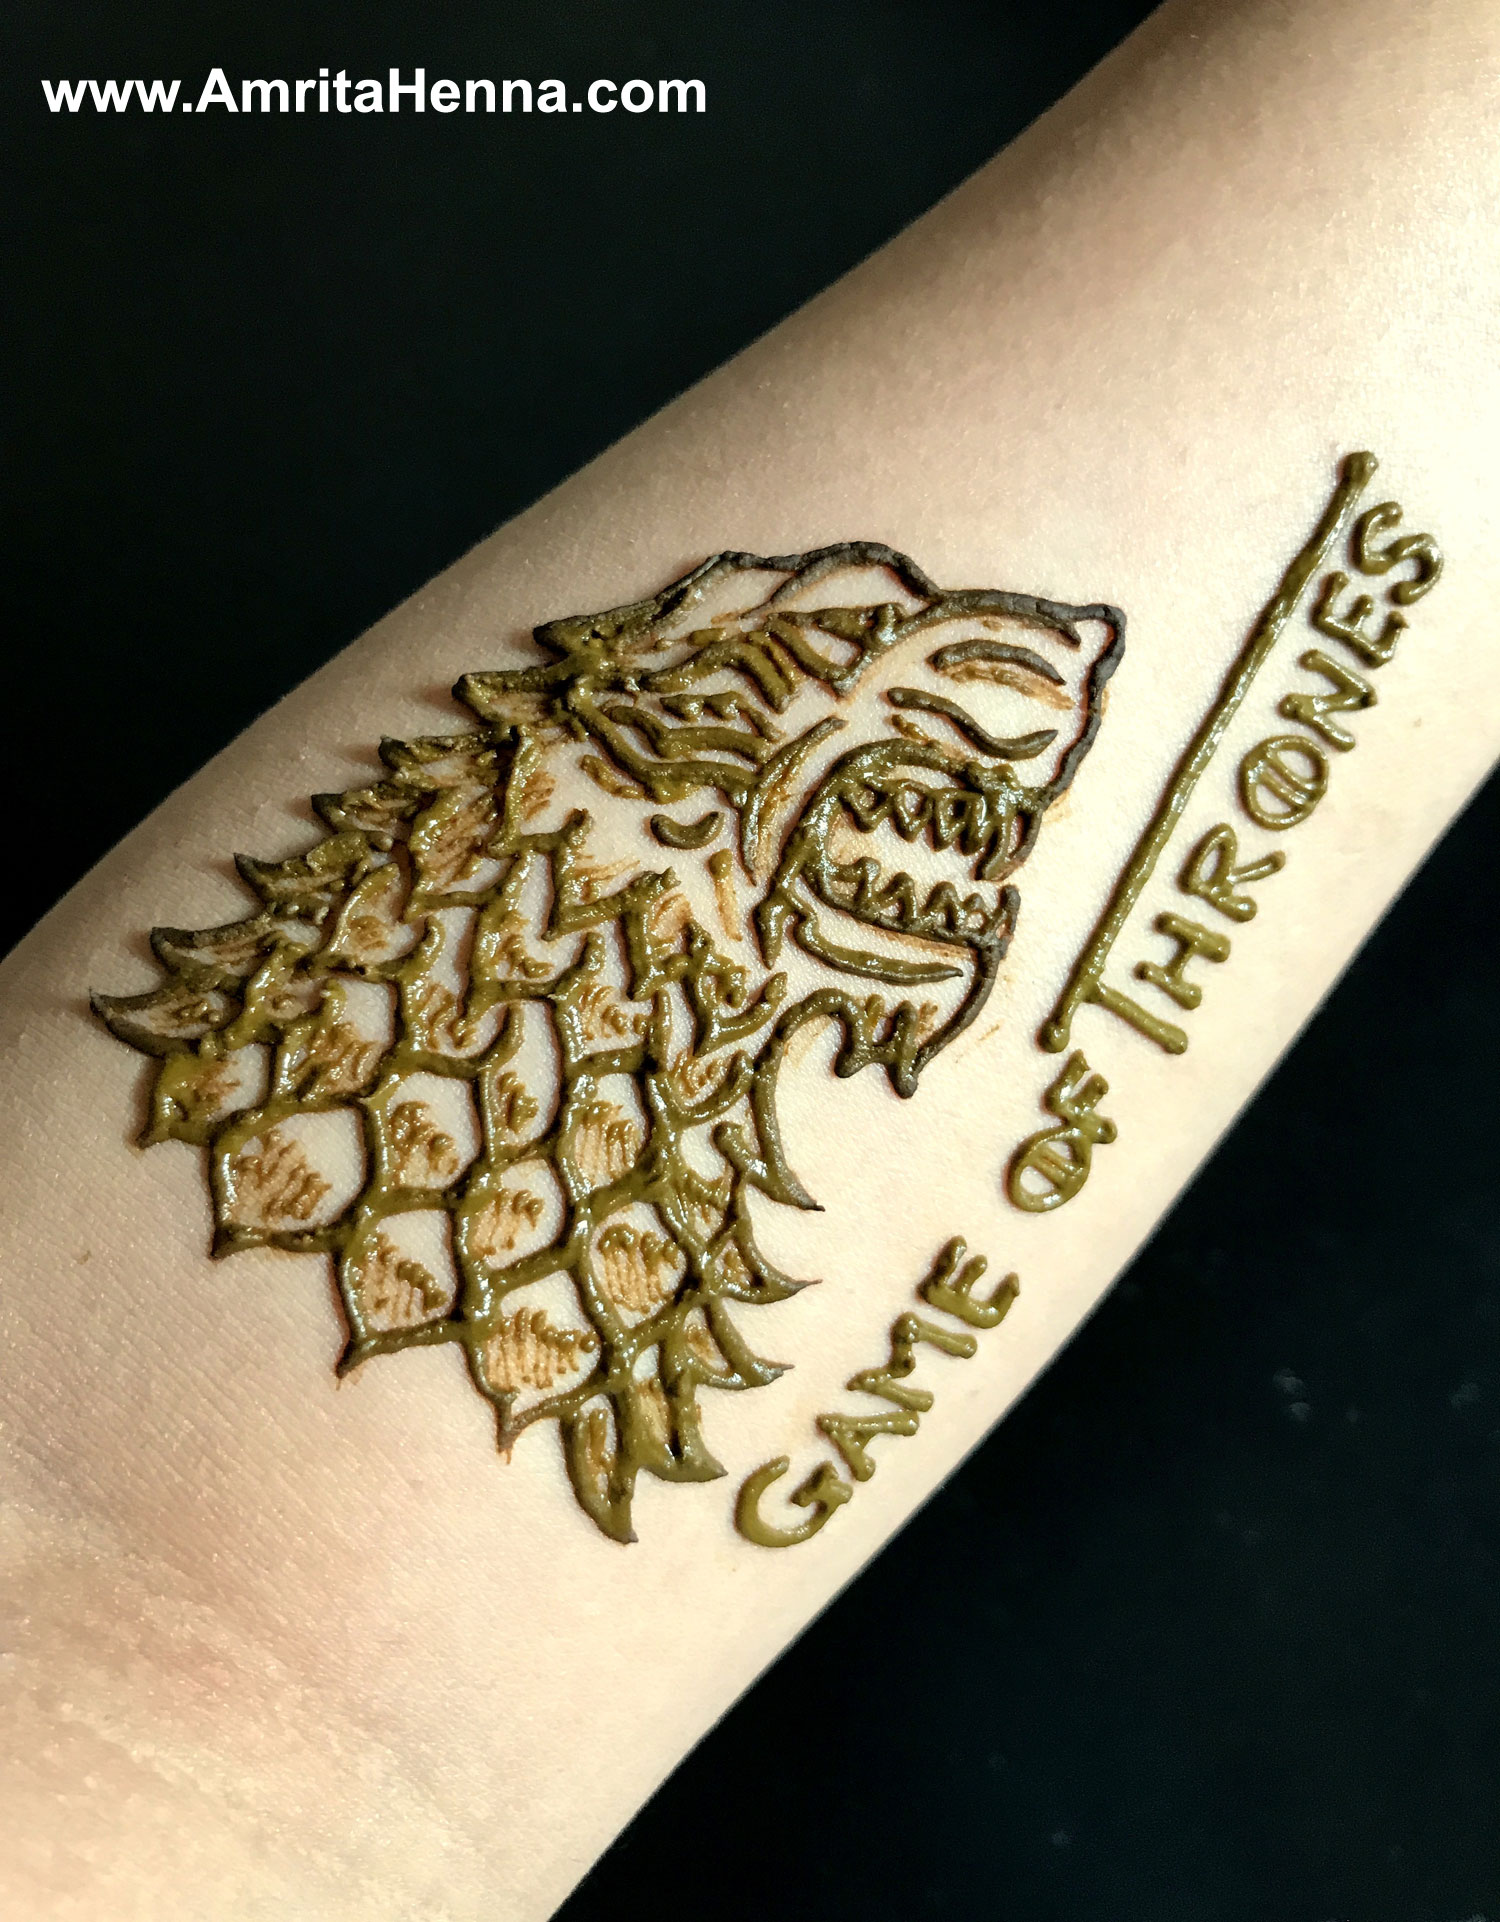 BEST GAME OF THRONES HENNA TATTOO DESIGN - GAME OF THRONES TATTOO IDEAS - GAME OF THRONES HOUSE STARK SIGIL HENNA DESIGN - GAME OF THRONES MEHENDI DESIGNS - MEHNDI DESIGN IDEAS FOR GAME OF THRONES FANS - MOST POPULAR GAME OF THRONES MEHANDI DESIGN - GAME OF THRONES HOUSE STARK OF WINTERFELL WORDS WINTER IS COMING - WINTER IS COMING HENNA TATTOO DESIGN - GAME OF THRONES WOLF HENNA DESIGN - GAME OF THRONES WOLF TATTOO DESIGN IDEA - GOT TATTOO DESIGNS - GOT HENNA DESIGNS - BEST GAME OF THRONES MEHNDI DESIGN FOR THIS SEASON - GAME OF THRONES LATEST SEASON HENNA TATTOO DESIGN